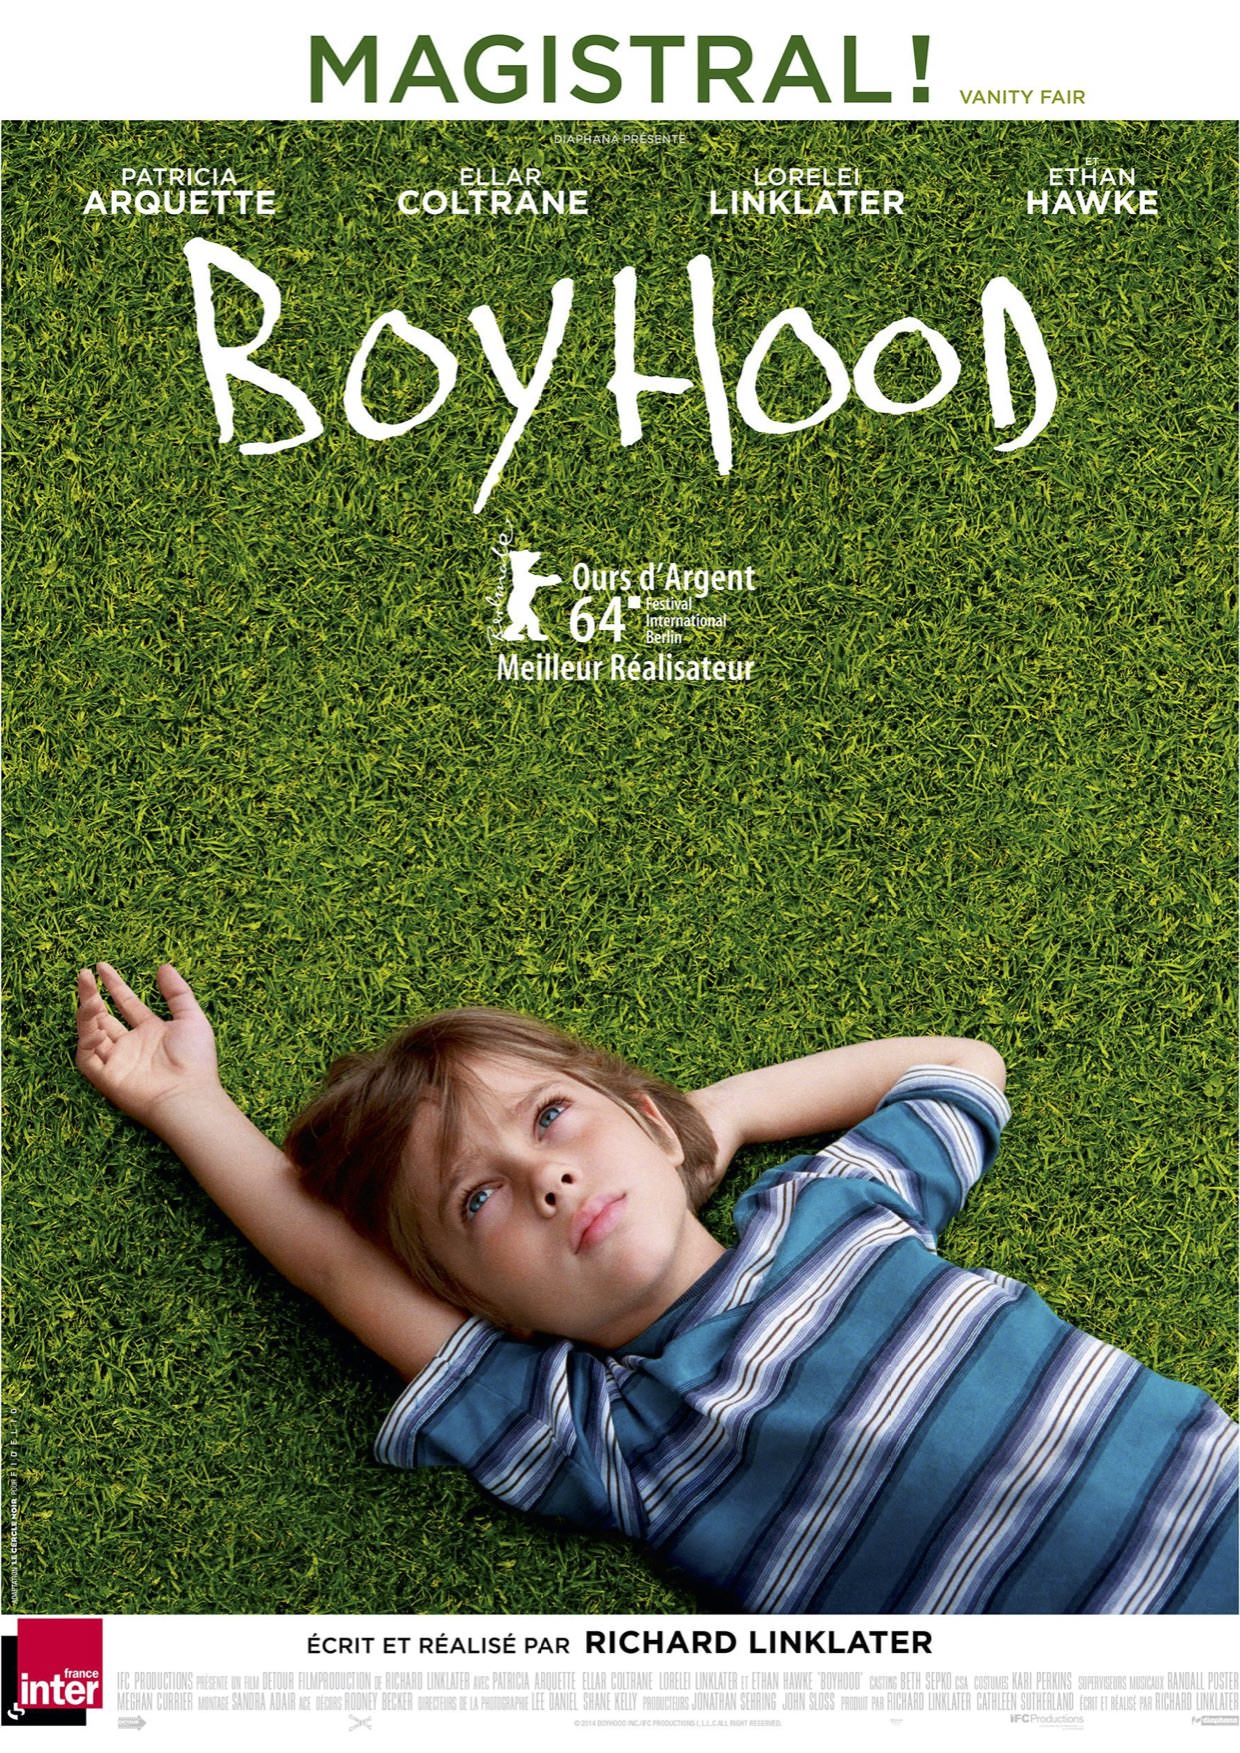 Boyhood linklater ellar coltrane